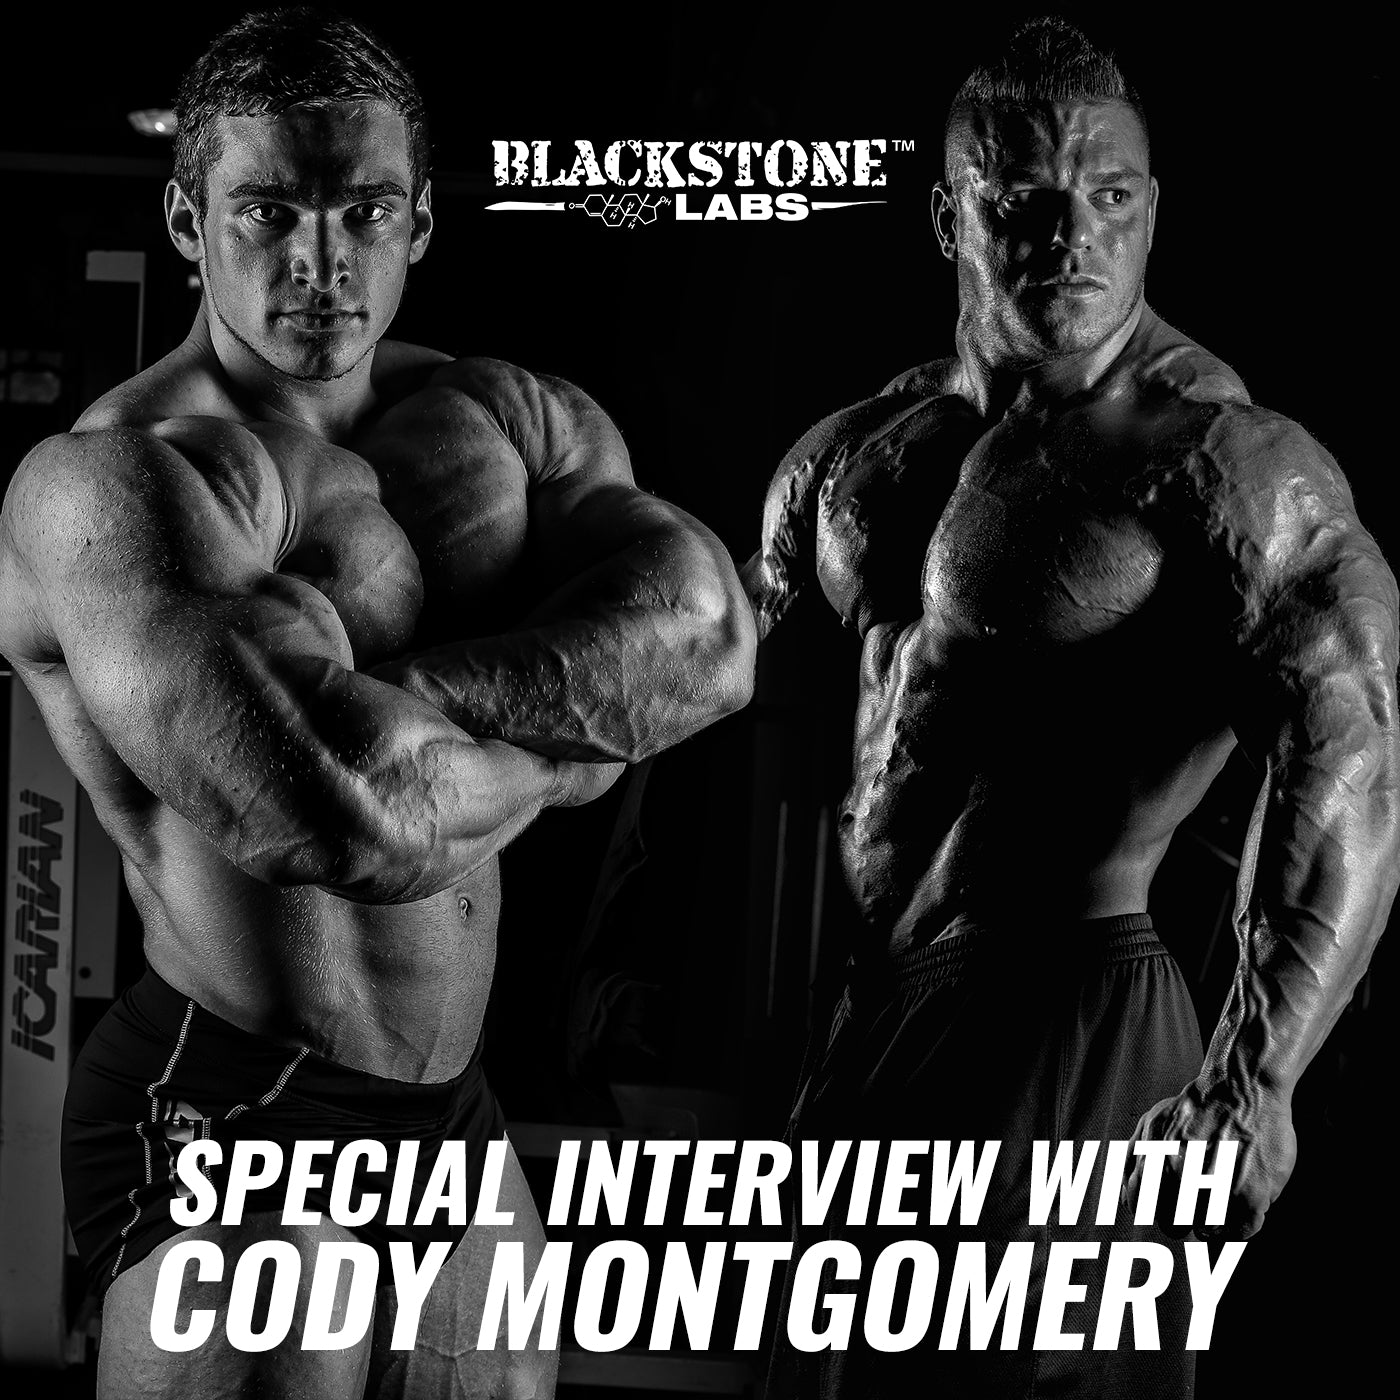 Special: Interview With Cody Montgomery